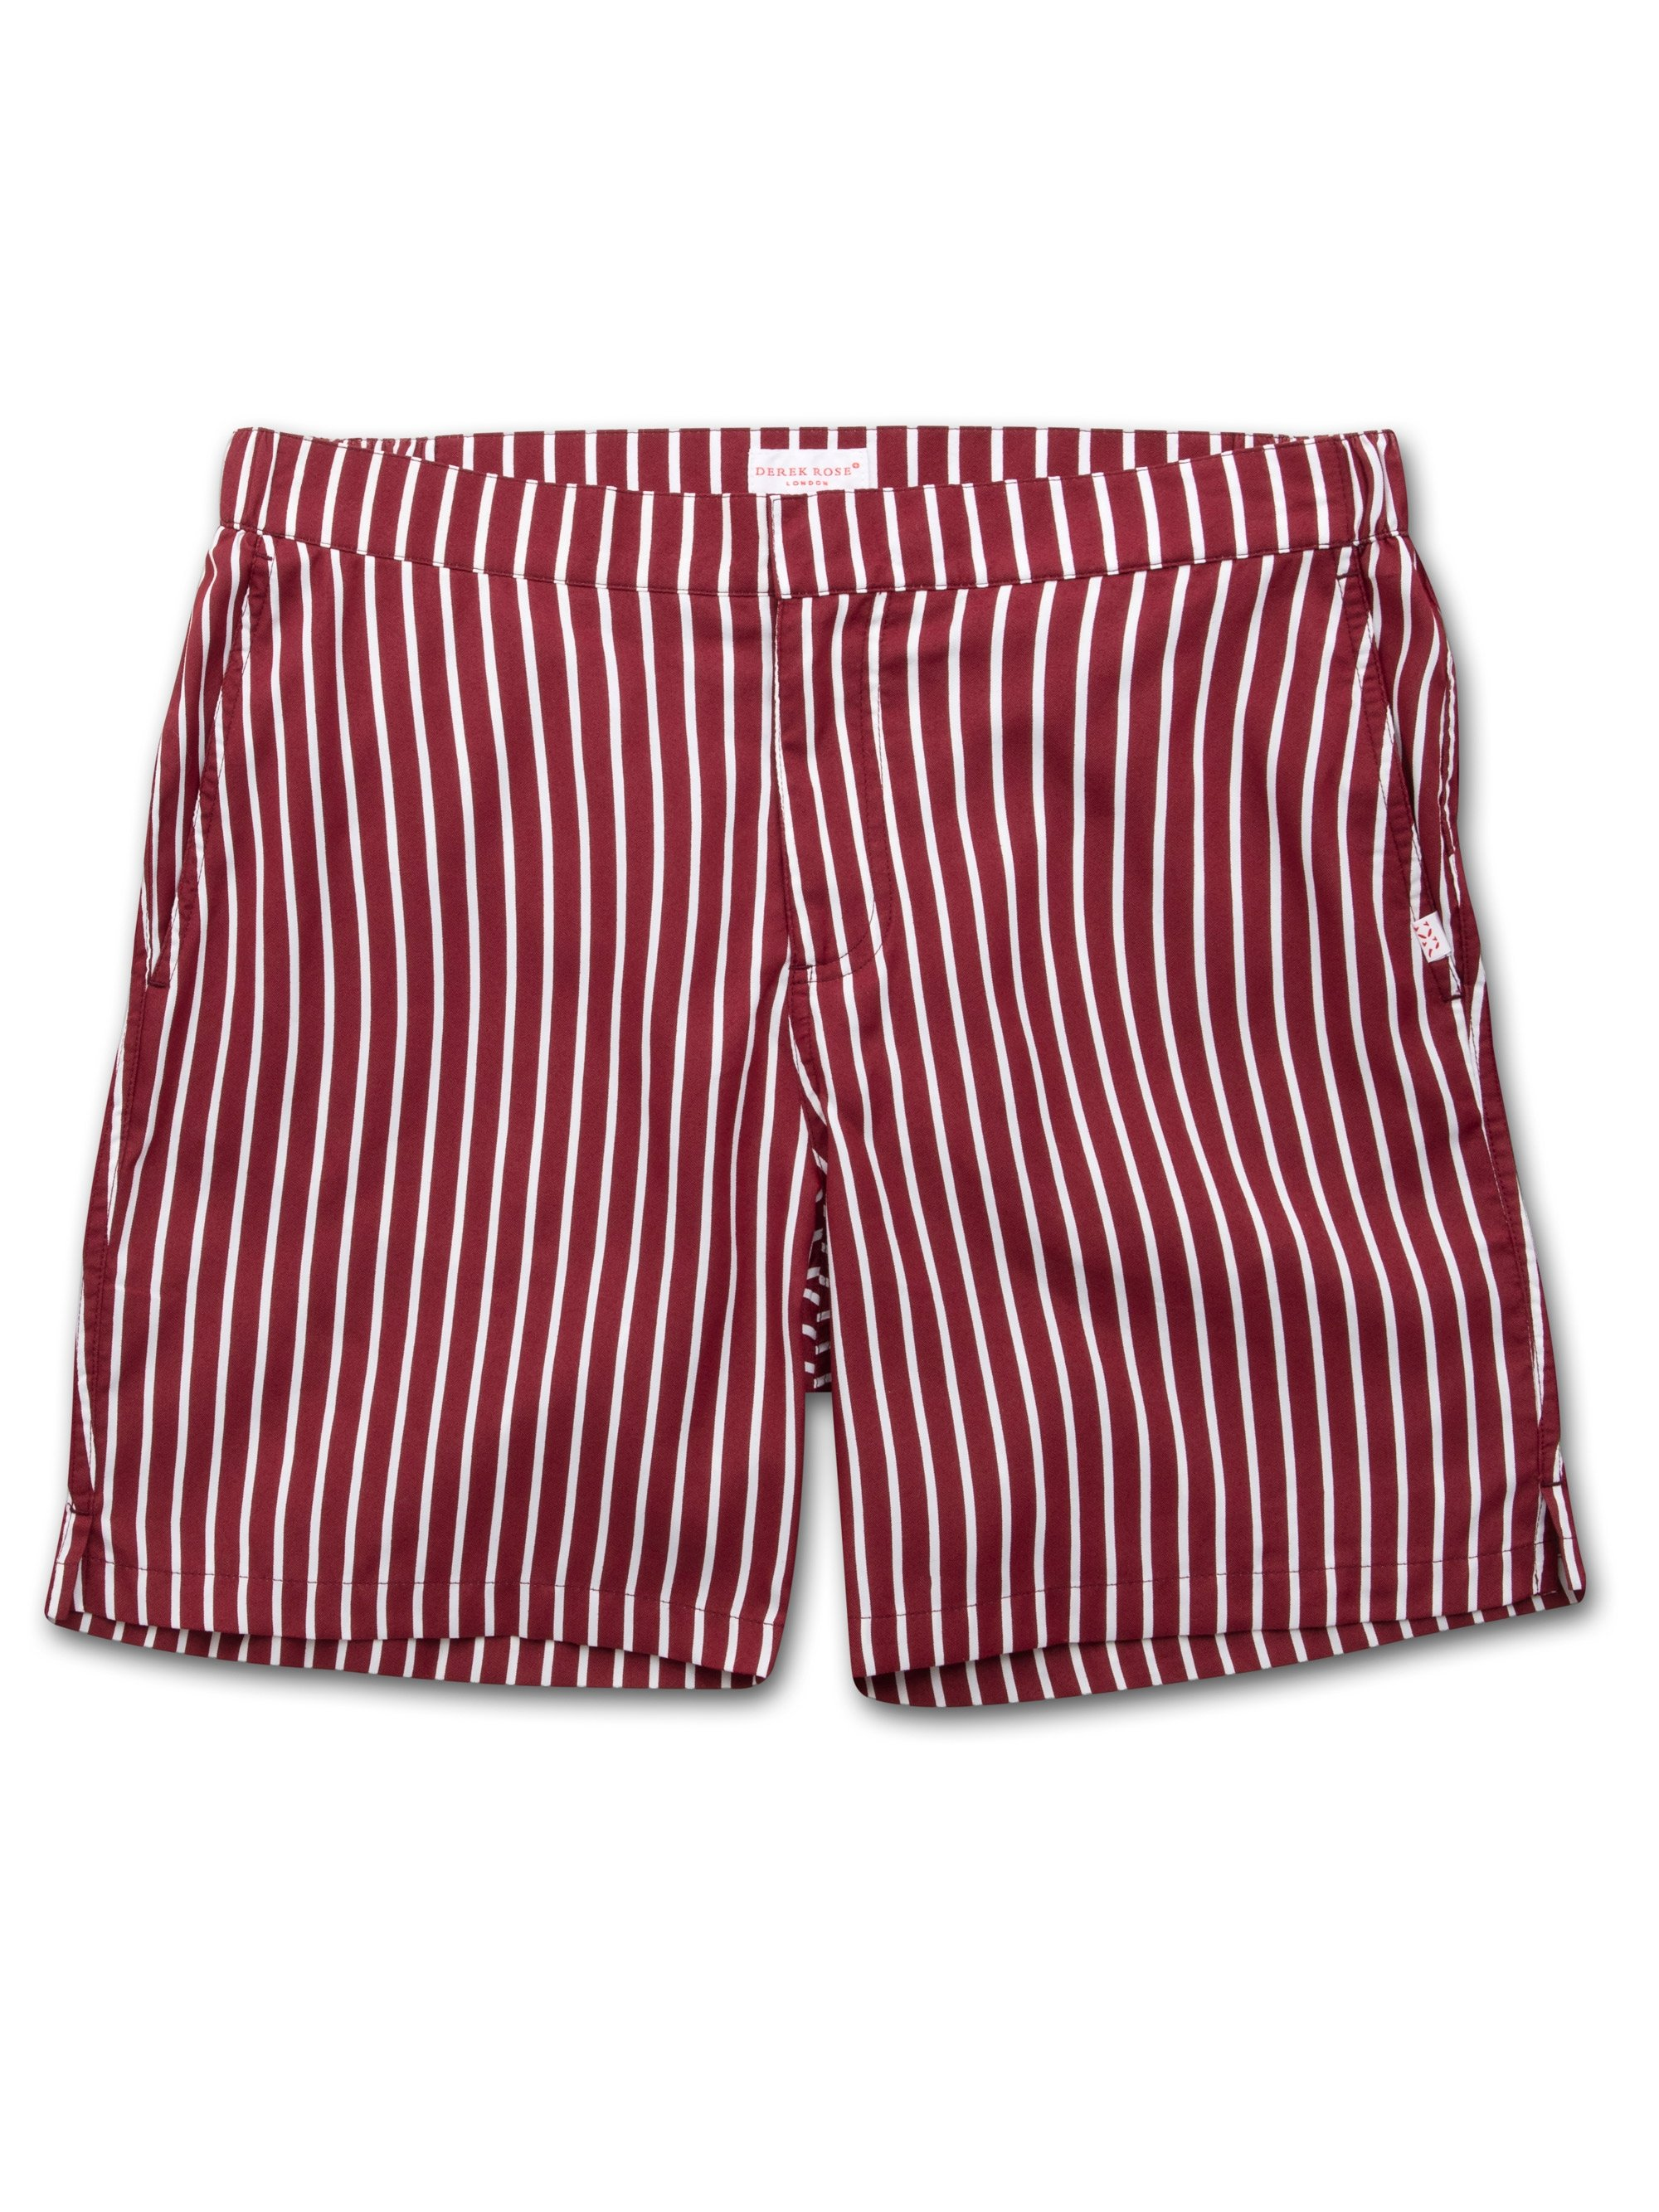 Men's Modern Fit Swim Shorts Bondi Burgundy